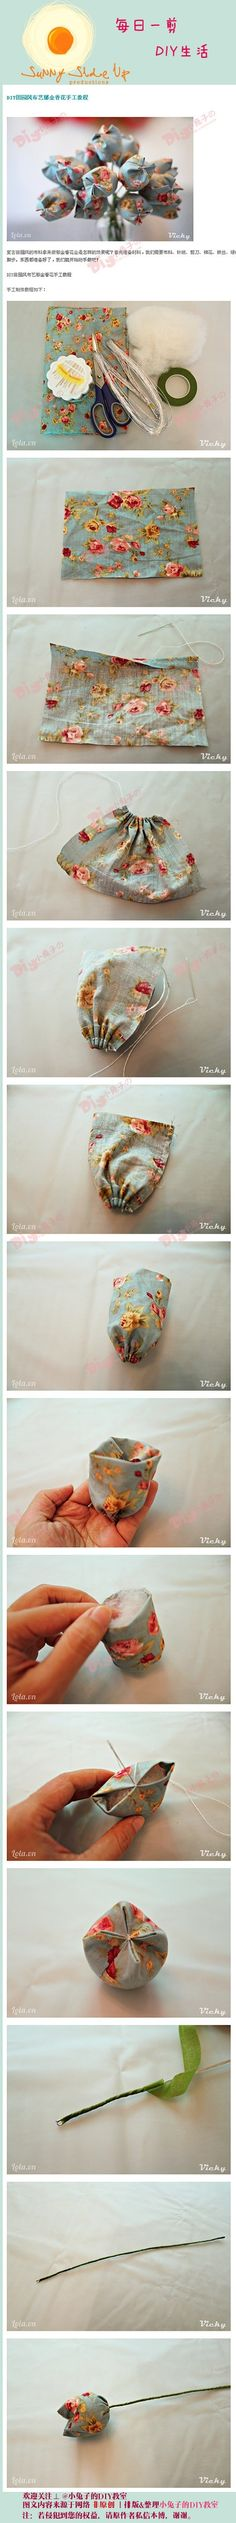 http://indulgy.com/post/zAIVt3NvQ2/diy-fabric-tulip-flower-diy-fabric-tulip-flower